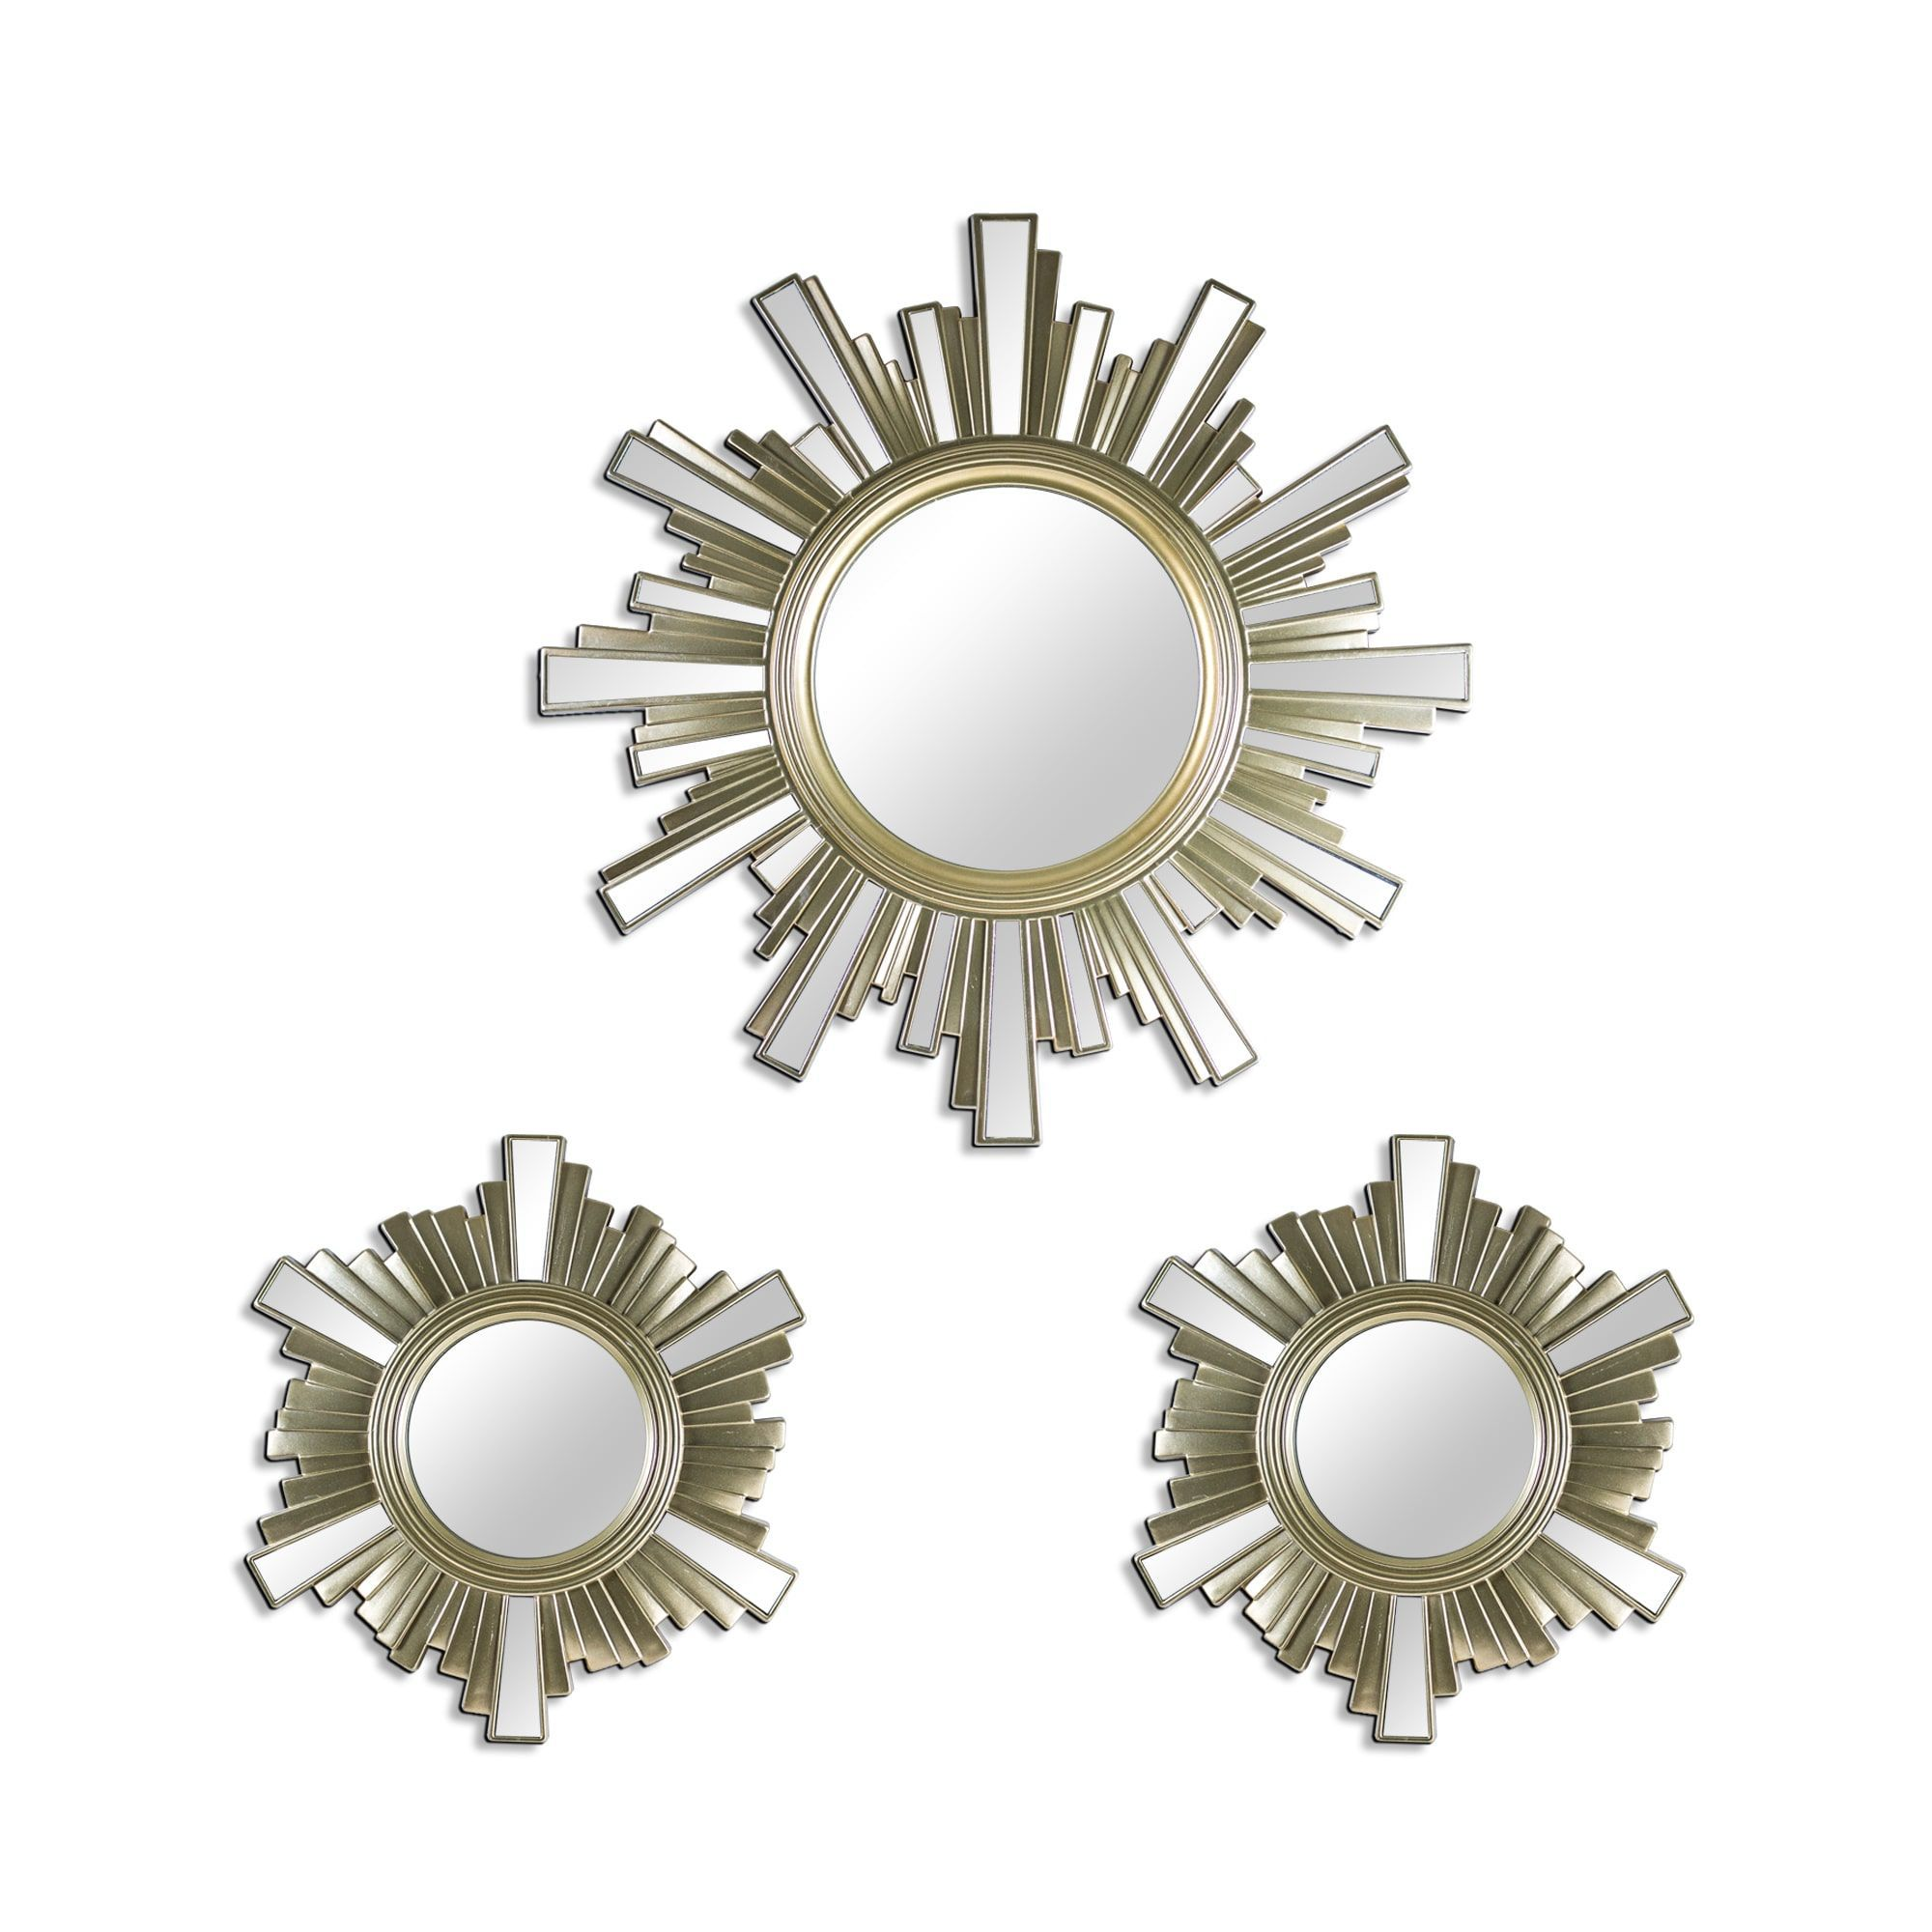 Gallery Art Deco Skyline Gold Sunburst Decorative Framed Wall Mirrors Set Of 3 Piece Beige Champagne